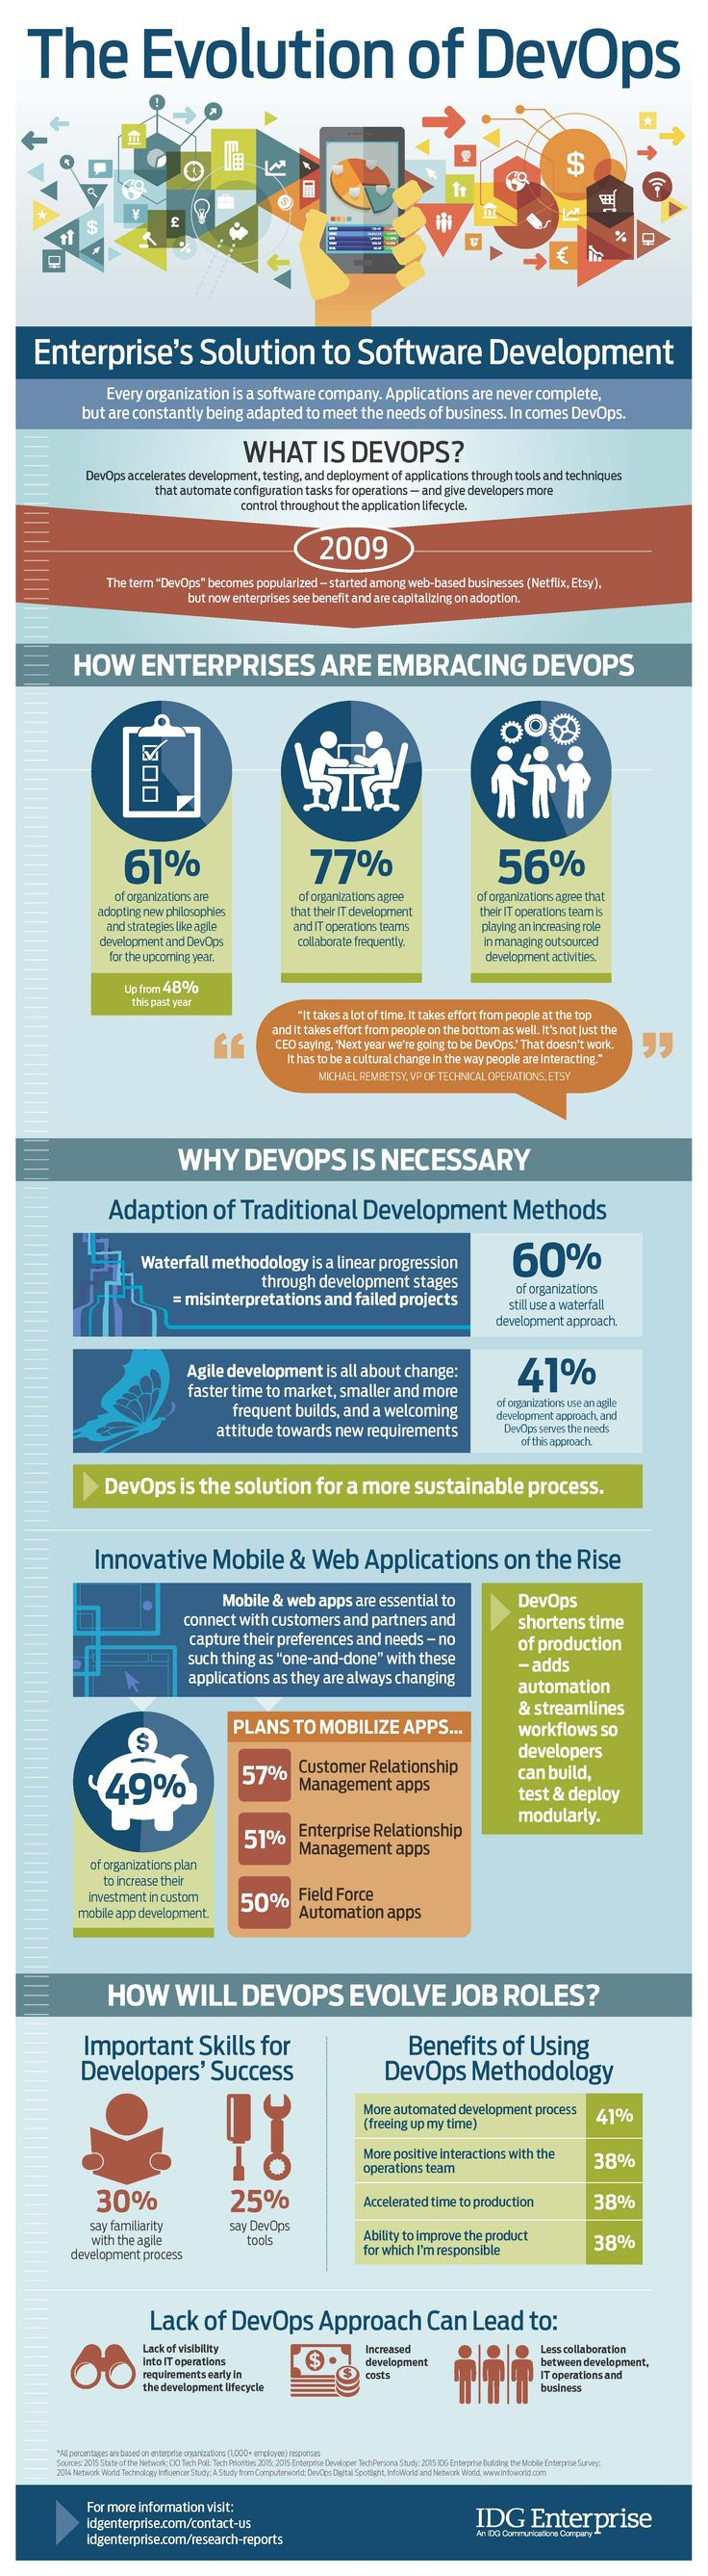 The Evolution of DevOps: Enterprise's Solution to Software Development [Infographic]